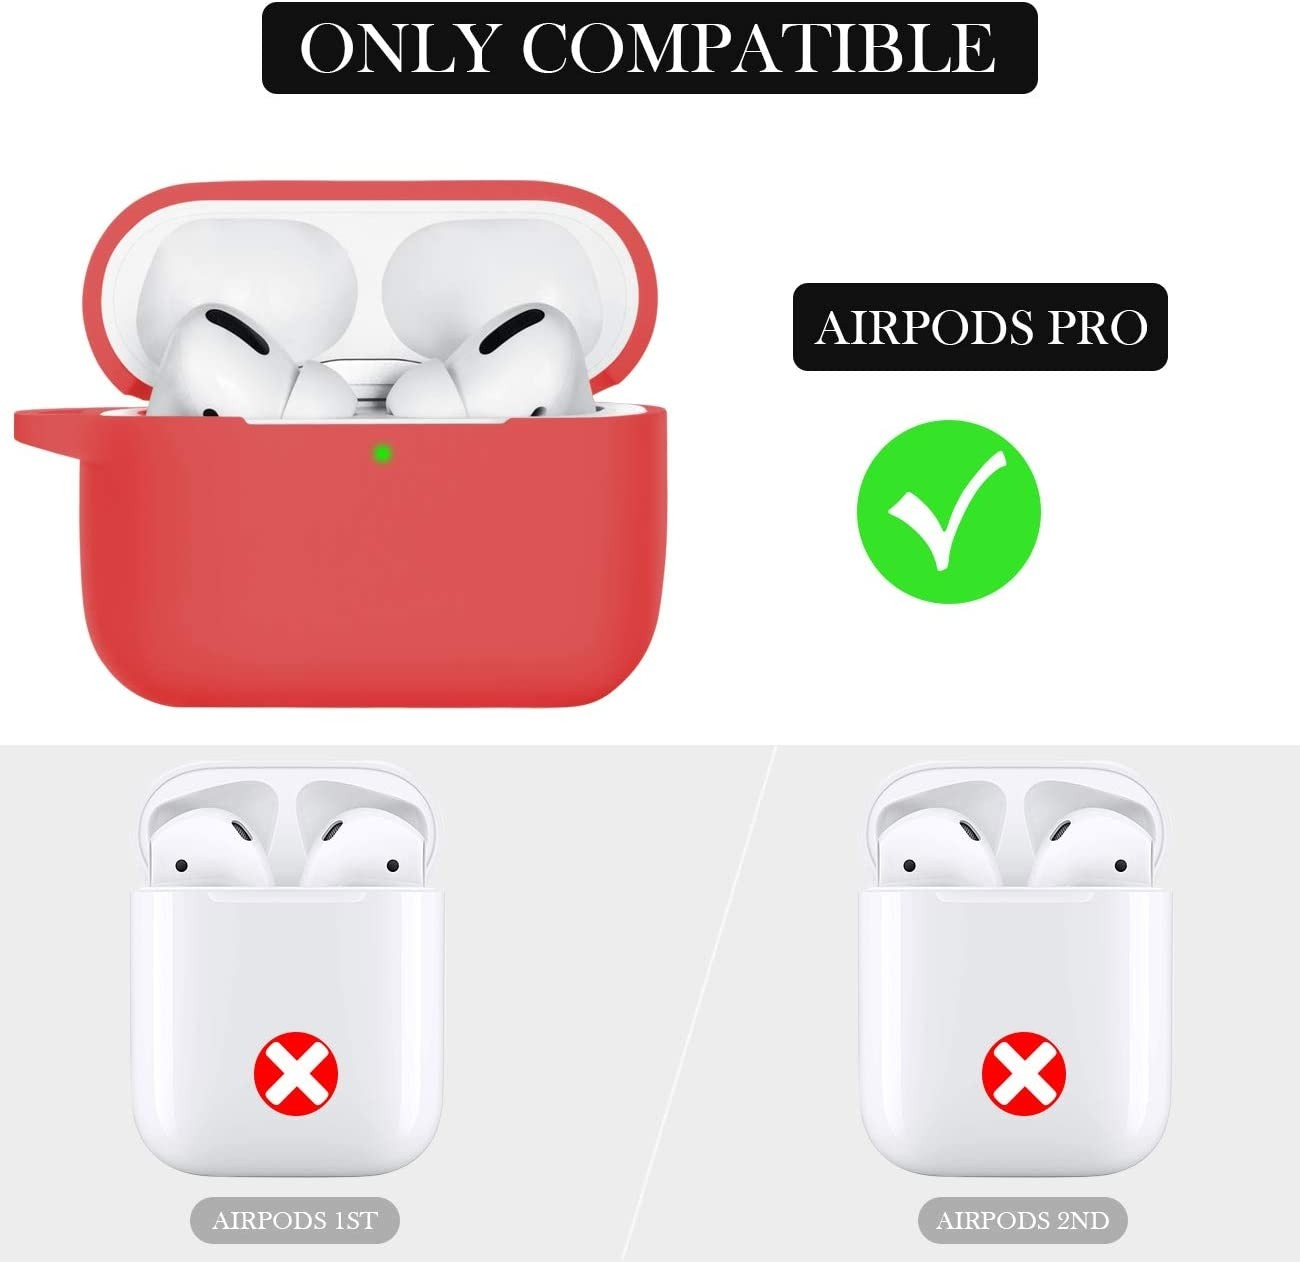 Wepro Shockproof Silicone Protective Skin with Keychain for AirPods Pro - Red, ZF-0084-red